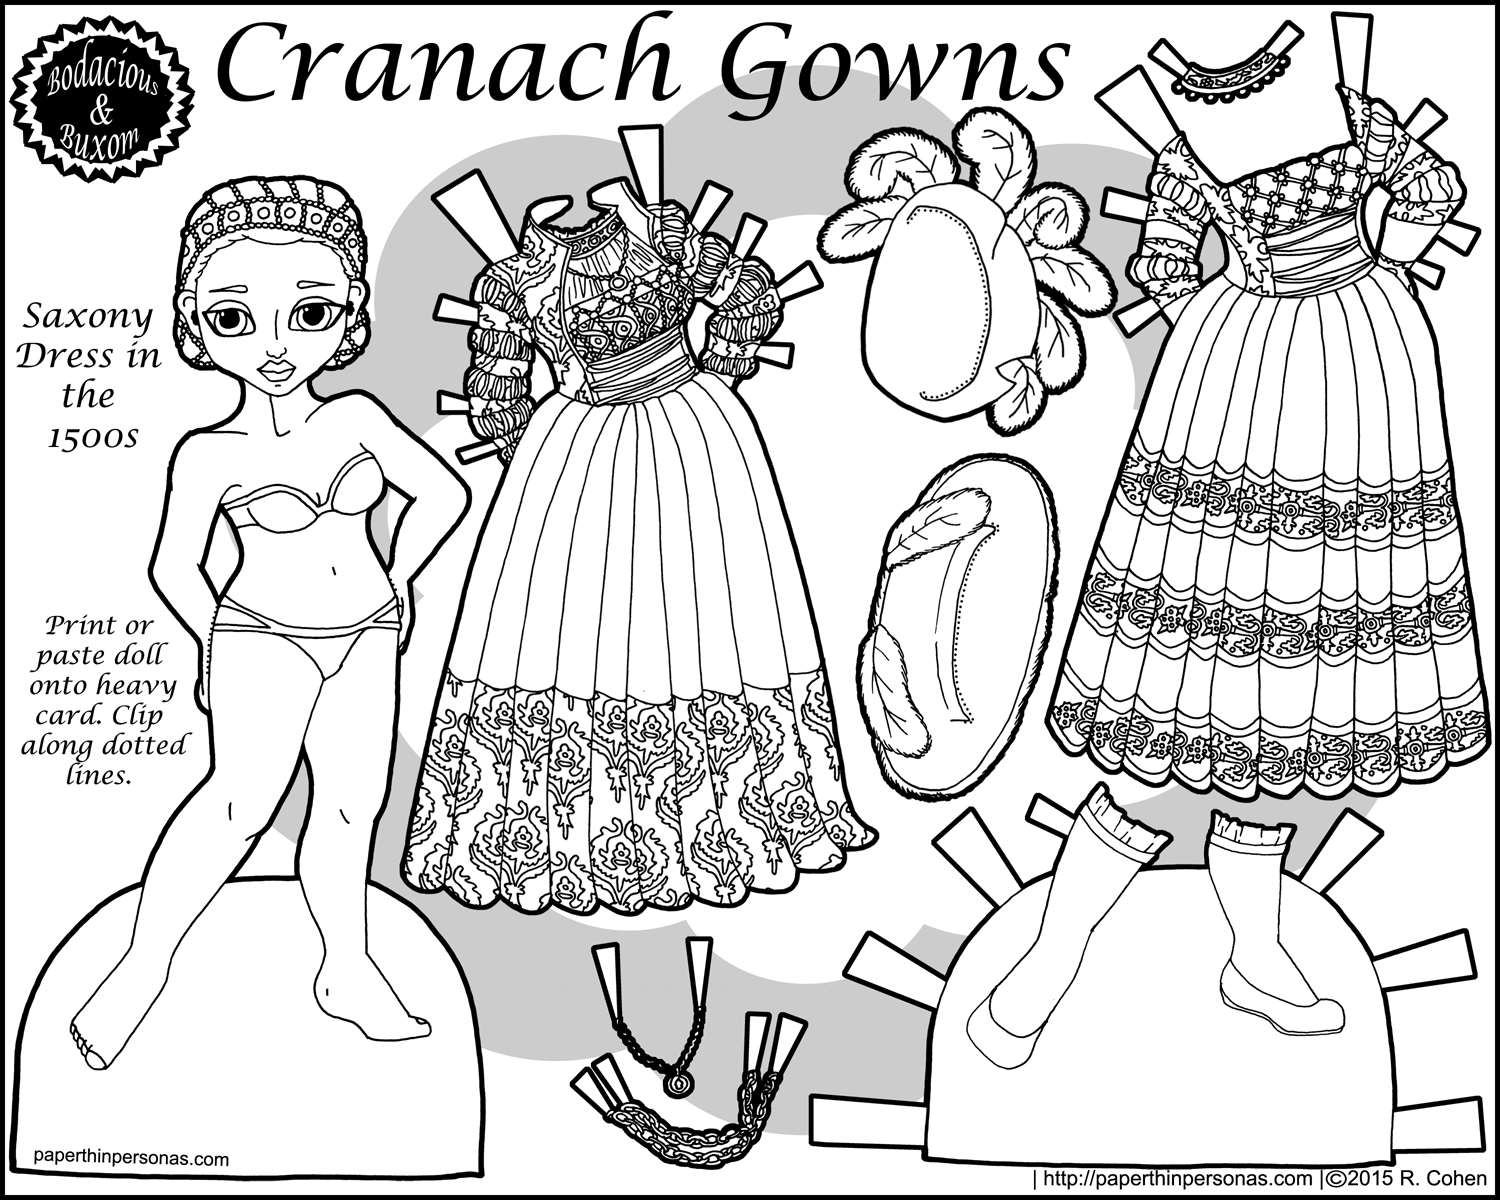 Cranach Gowns A Paper Doll Of A 15th Century Saxony Dress